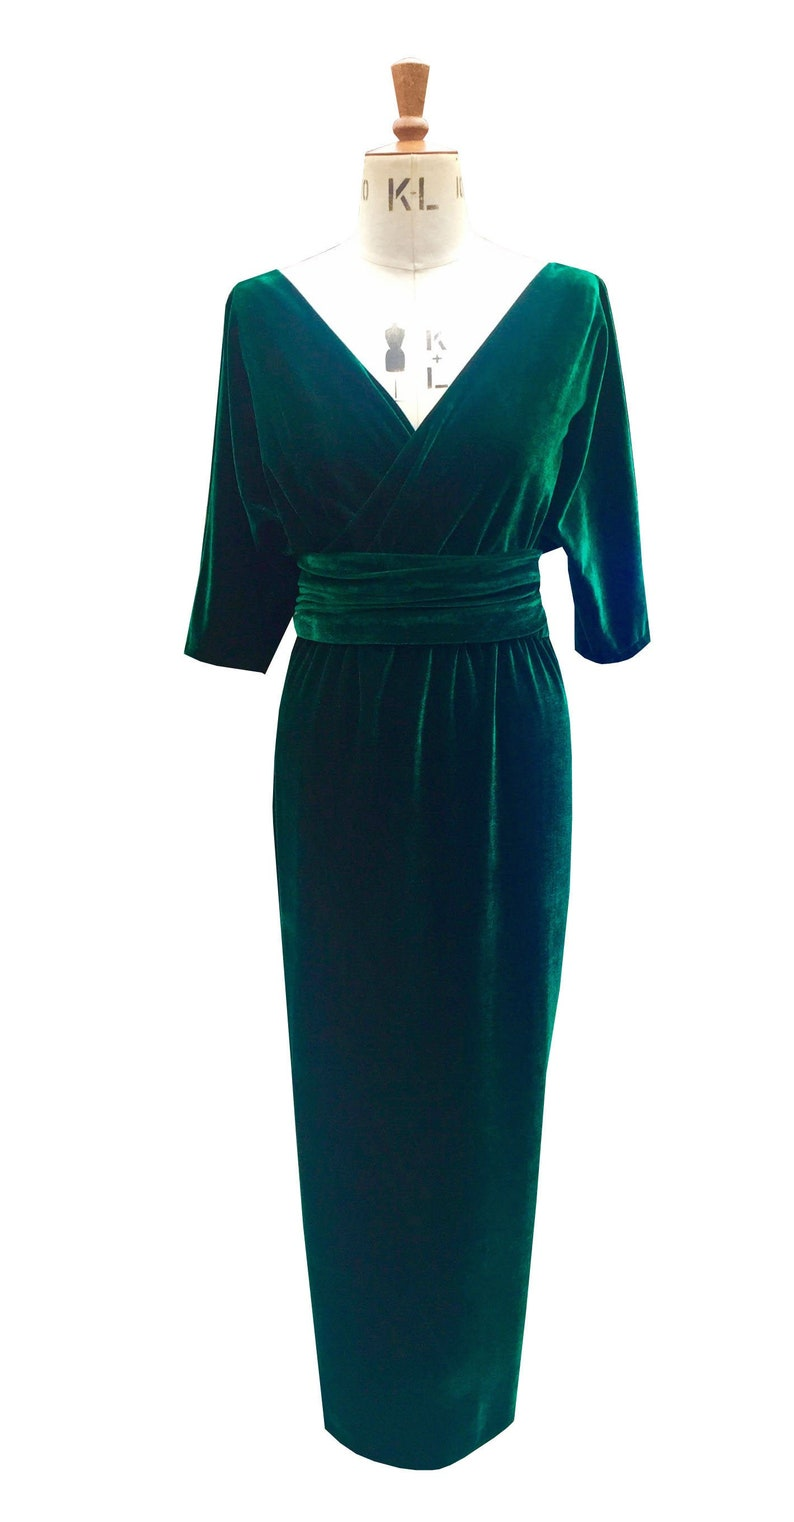 1960s Evening Dresses, Bridesmaids, Mothers Gowns Baylis and Knight Green Velvet Wrap Dress elegant cocktail pinup Event $107.86 AT vintagedancer.com